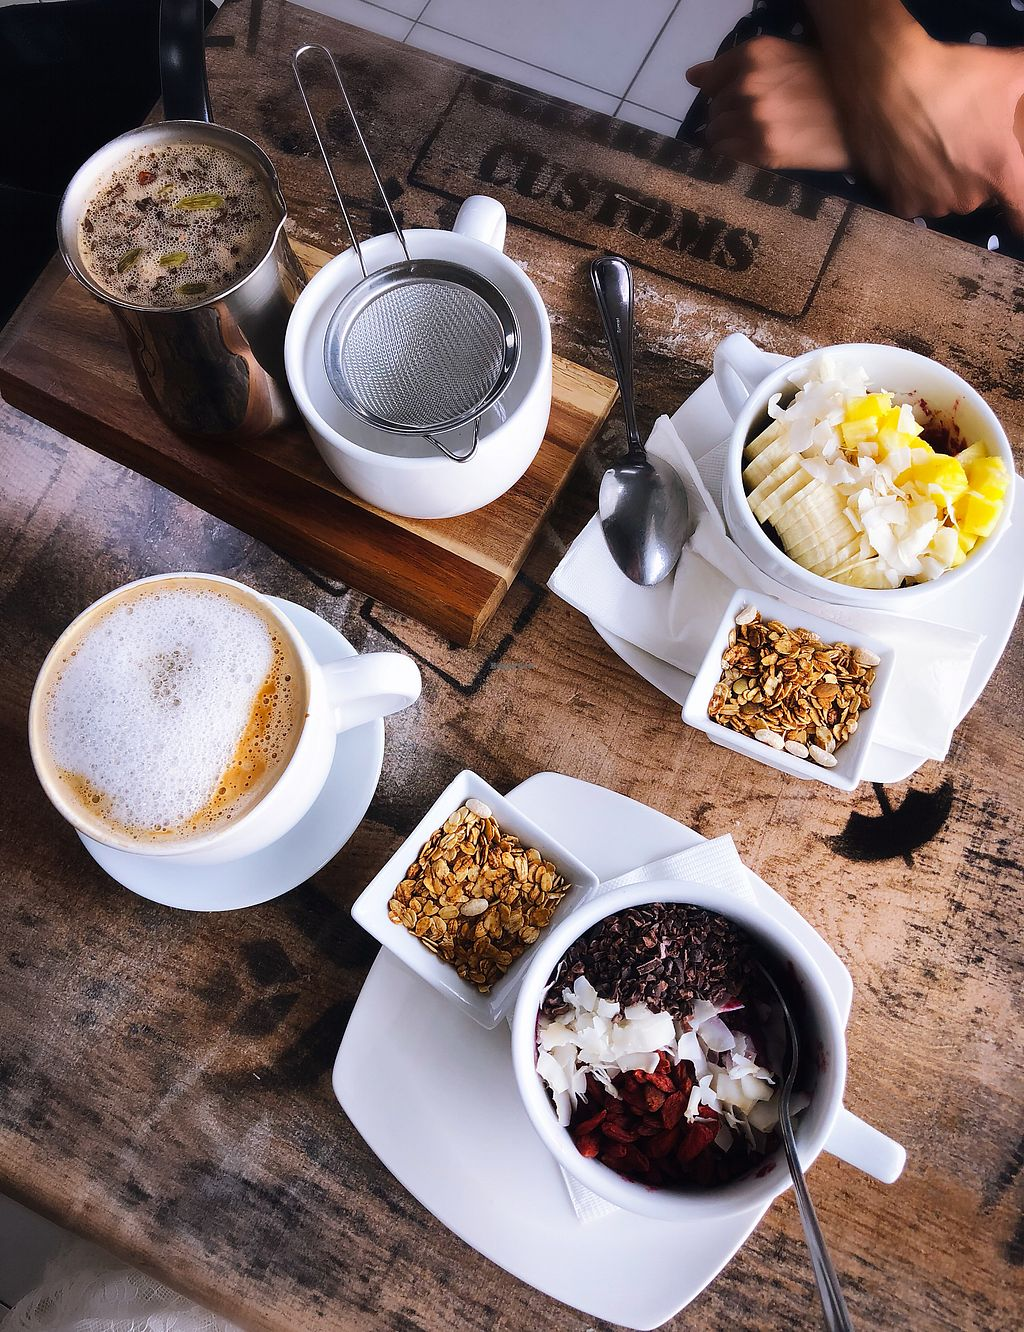 """Photo of Island Naturals Cafe  by <a href=""""/members/profile/emiliepix"""">emiliepix</a> <br/>Açaí bowls, coconut milk late, and chai tea! <br/> January 20, 2018  - <a href='/contact/abuse/image/44322/348953'>Report</a>"""